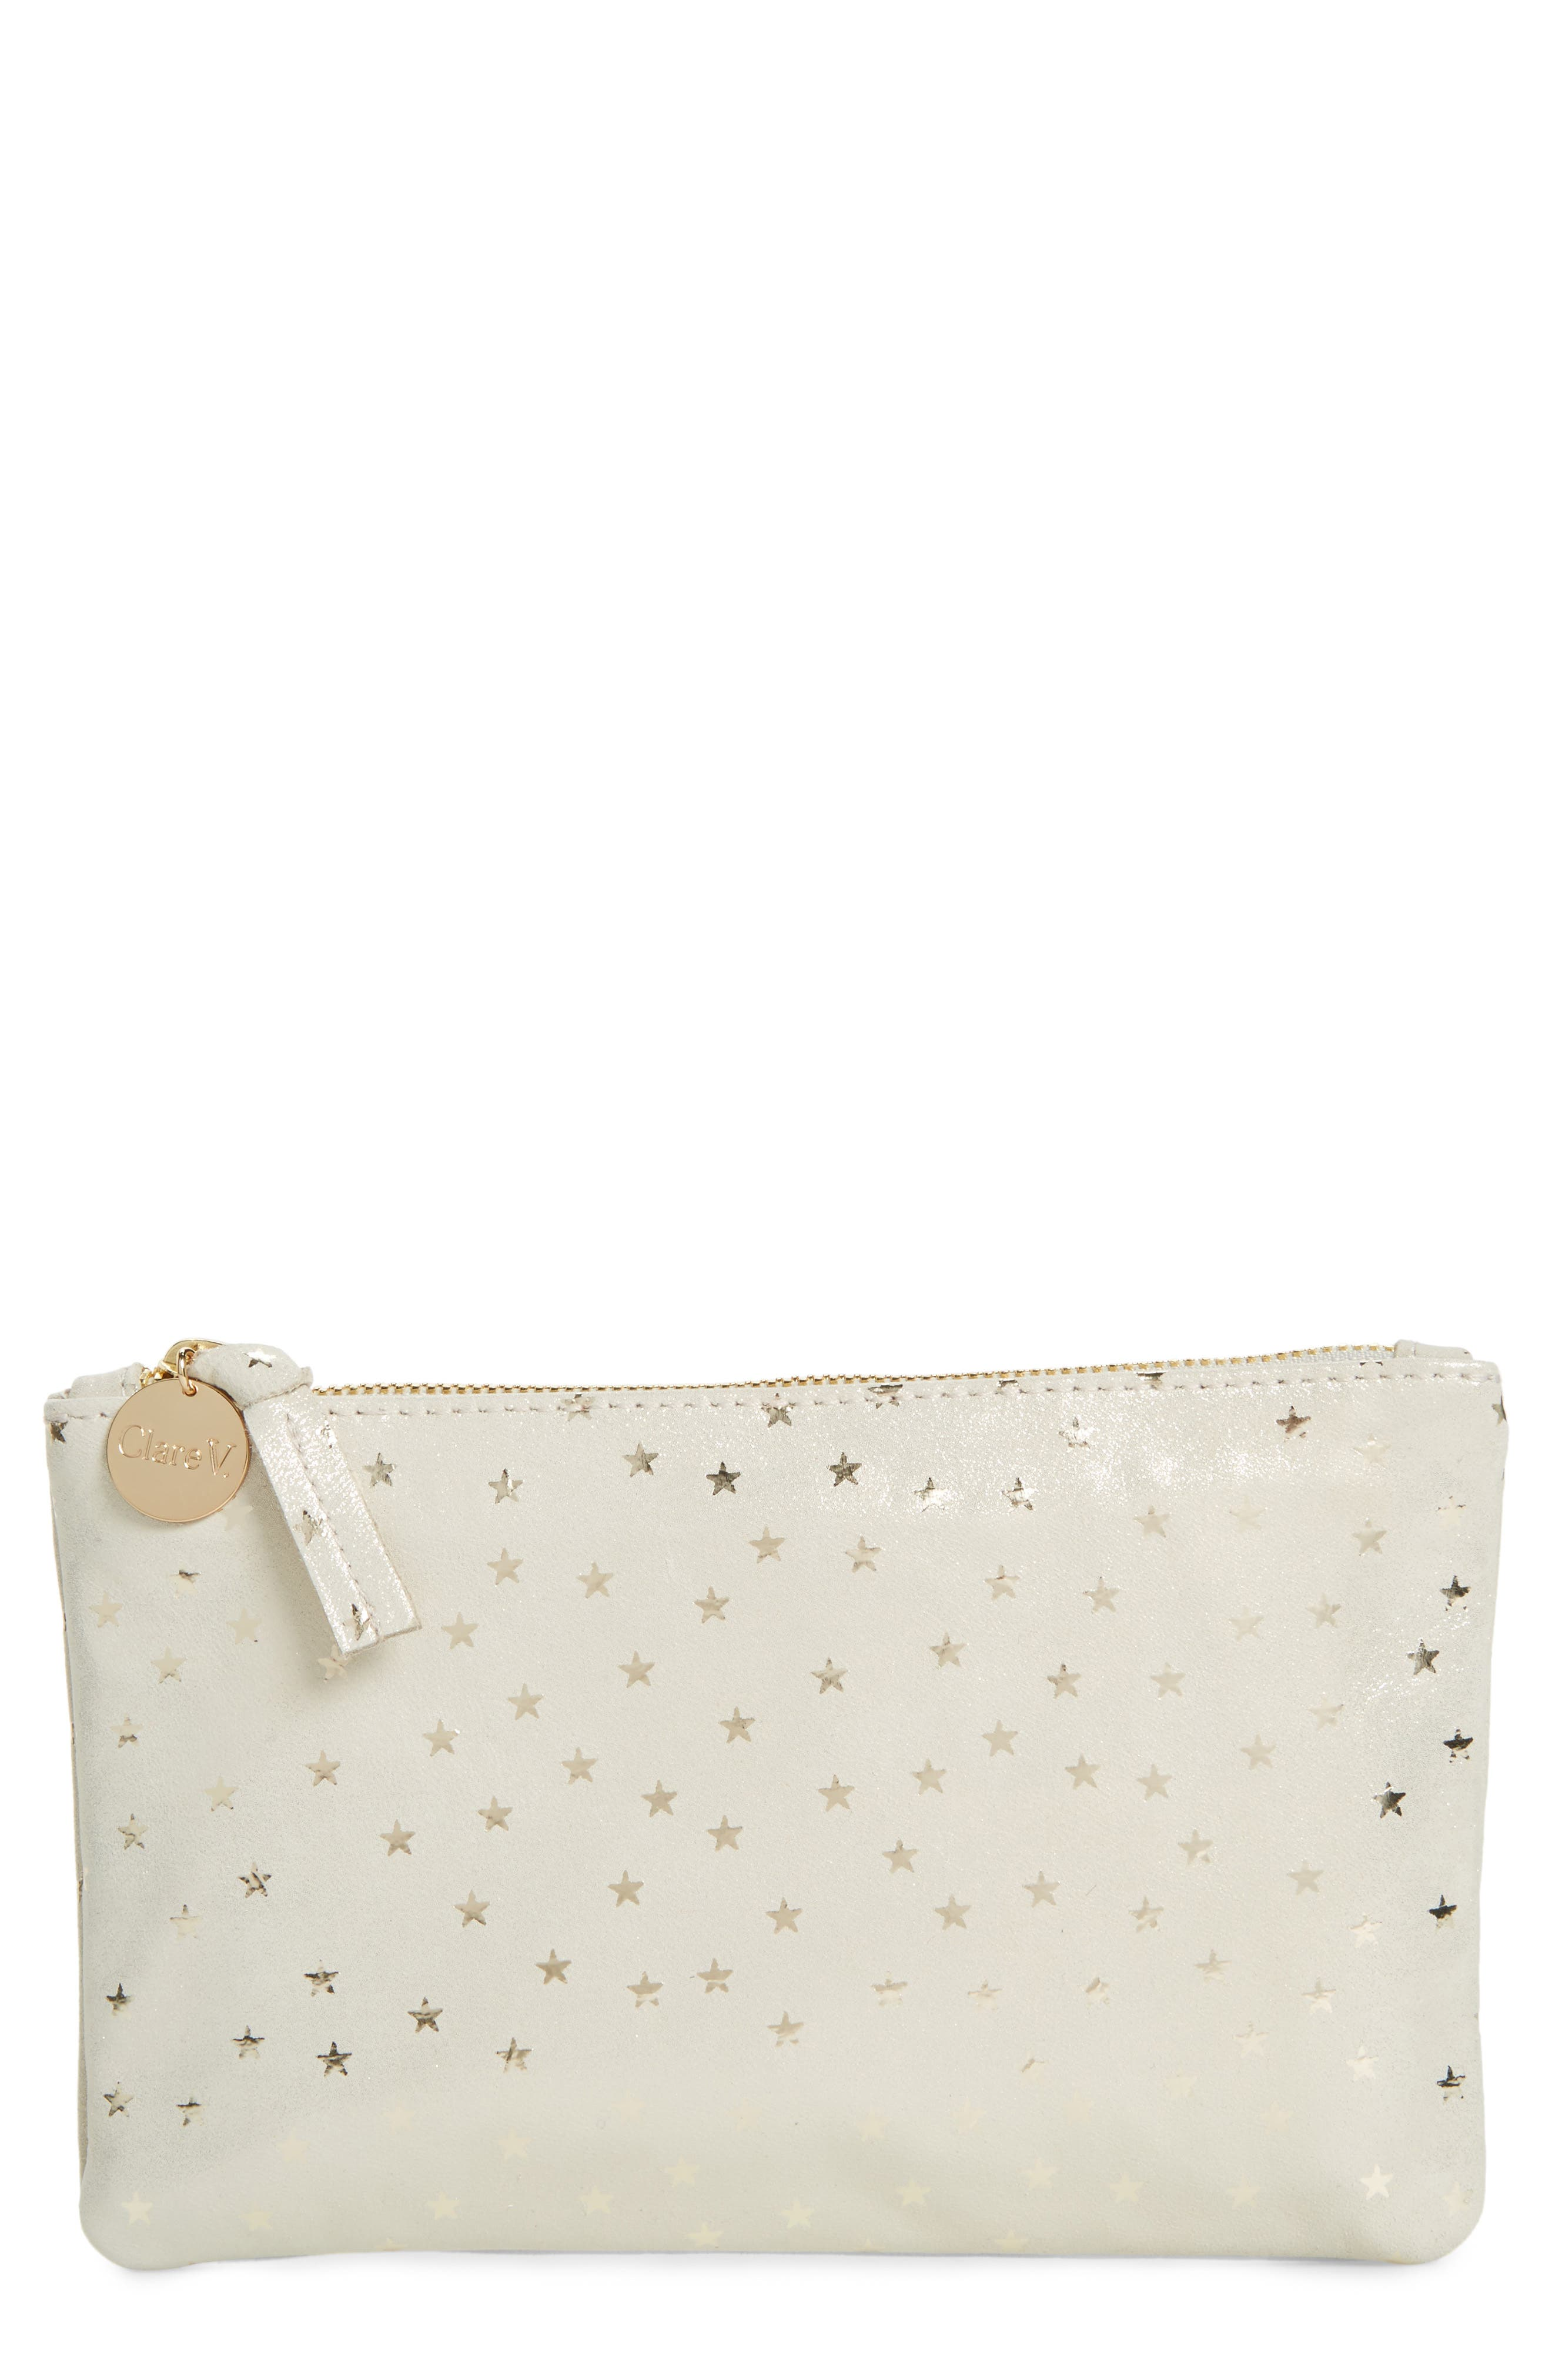 Supreme Star Shimmer Suede Wallet Clutch,                             Main thumbnail 1, color,                             900